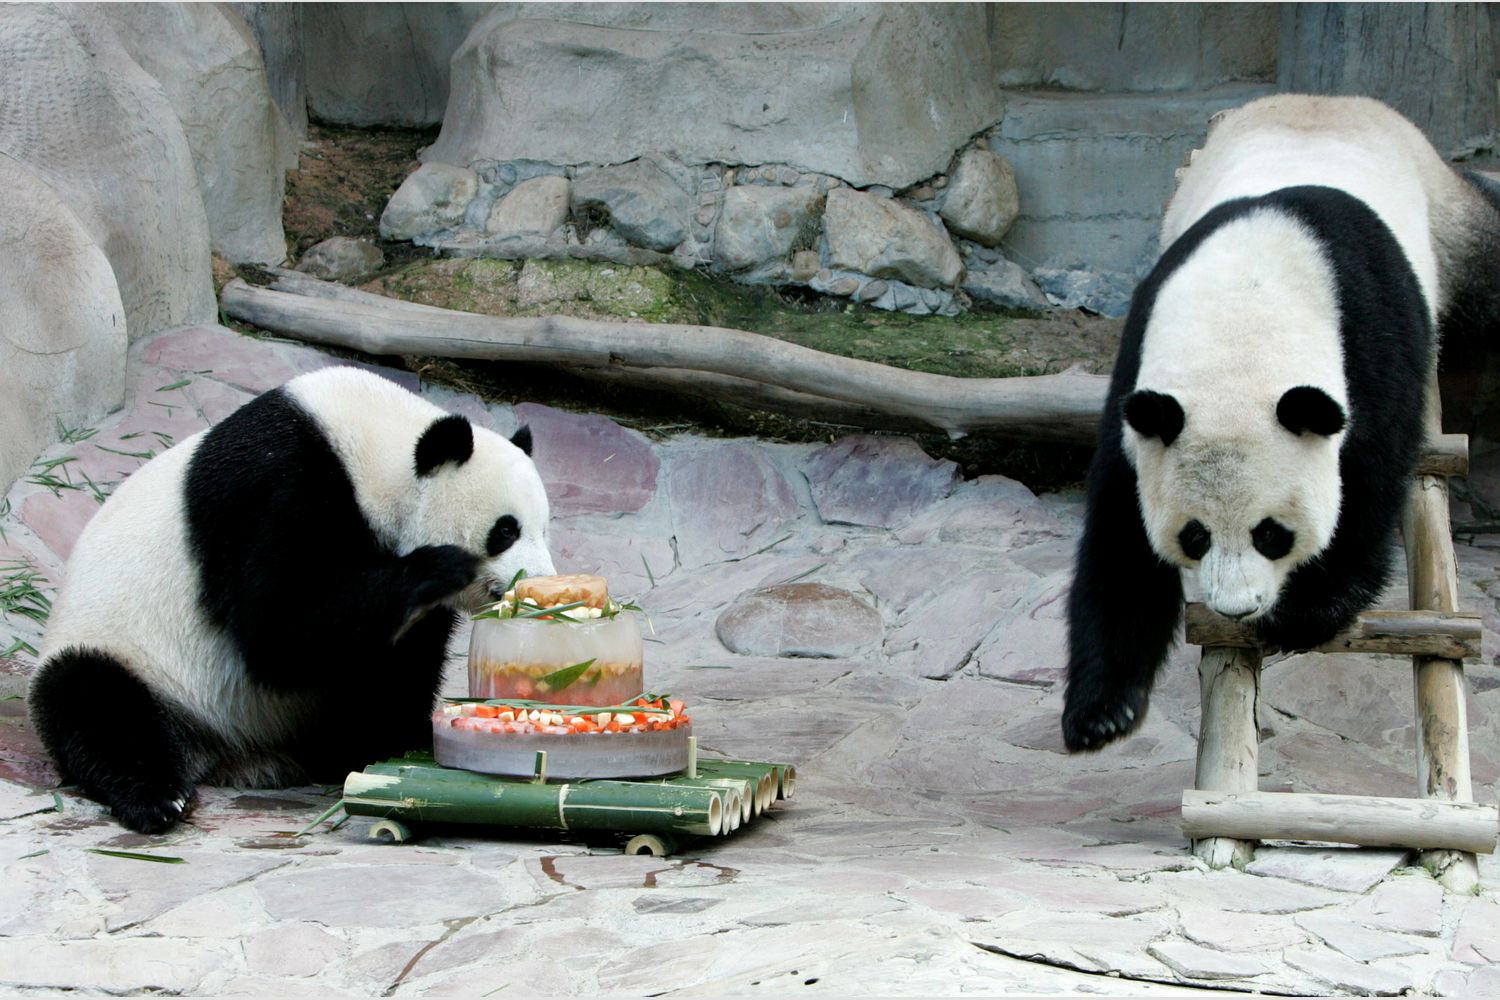 Giant pandas Lin Hui and Chuang Chuang play with an ice cake at Chiang Mai Zoo on Nov 9, 2005. (Reuters photo)